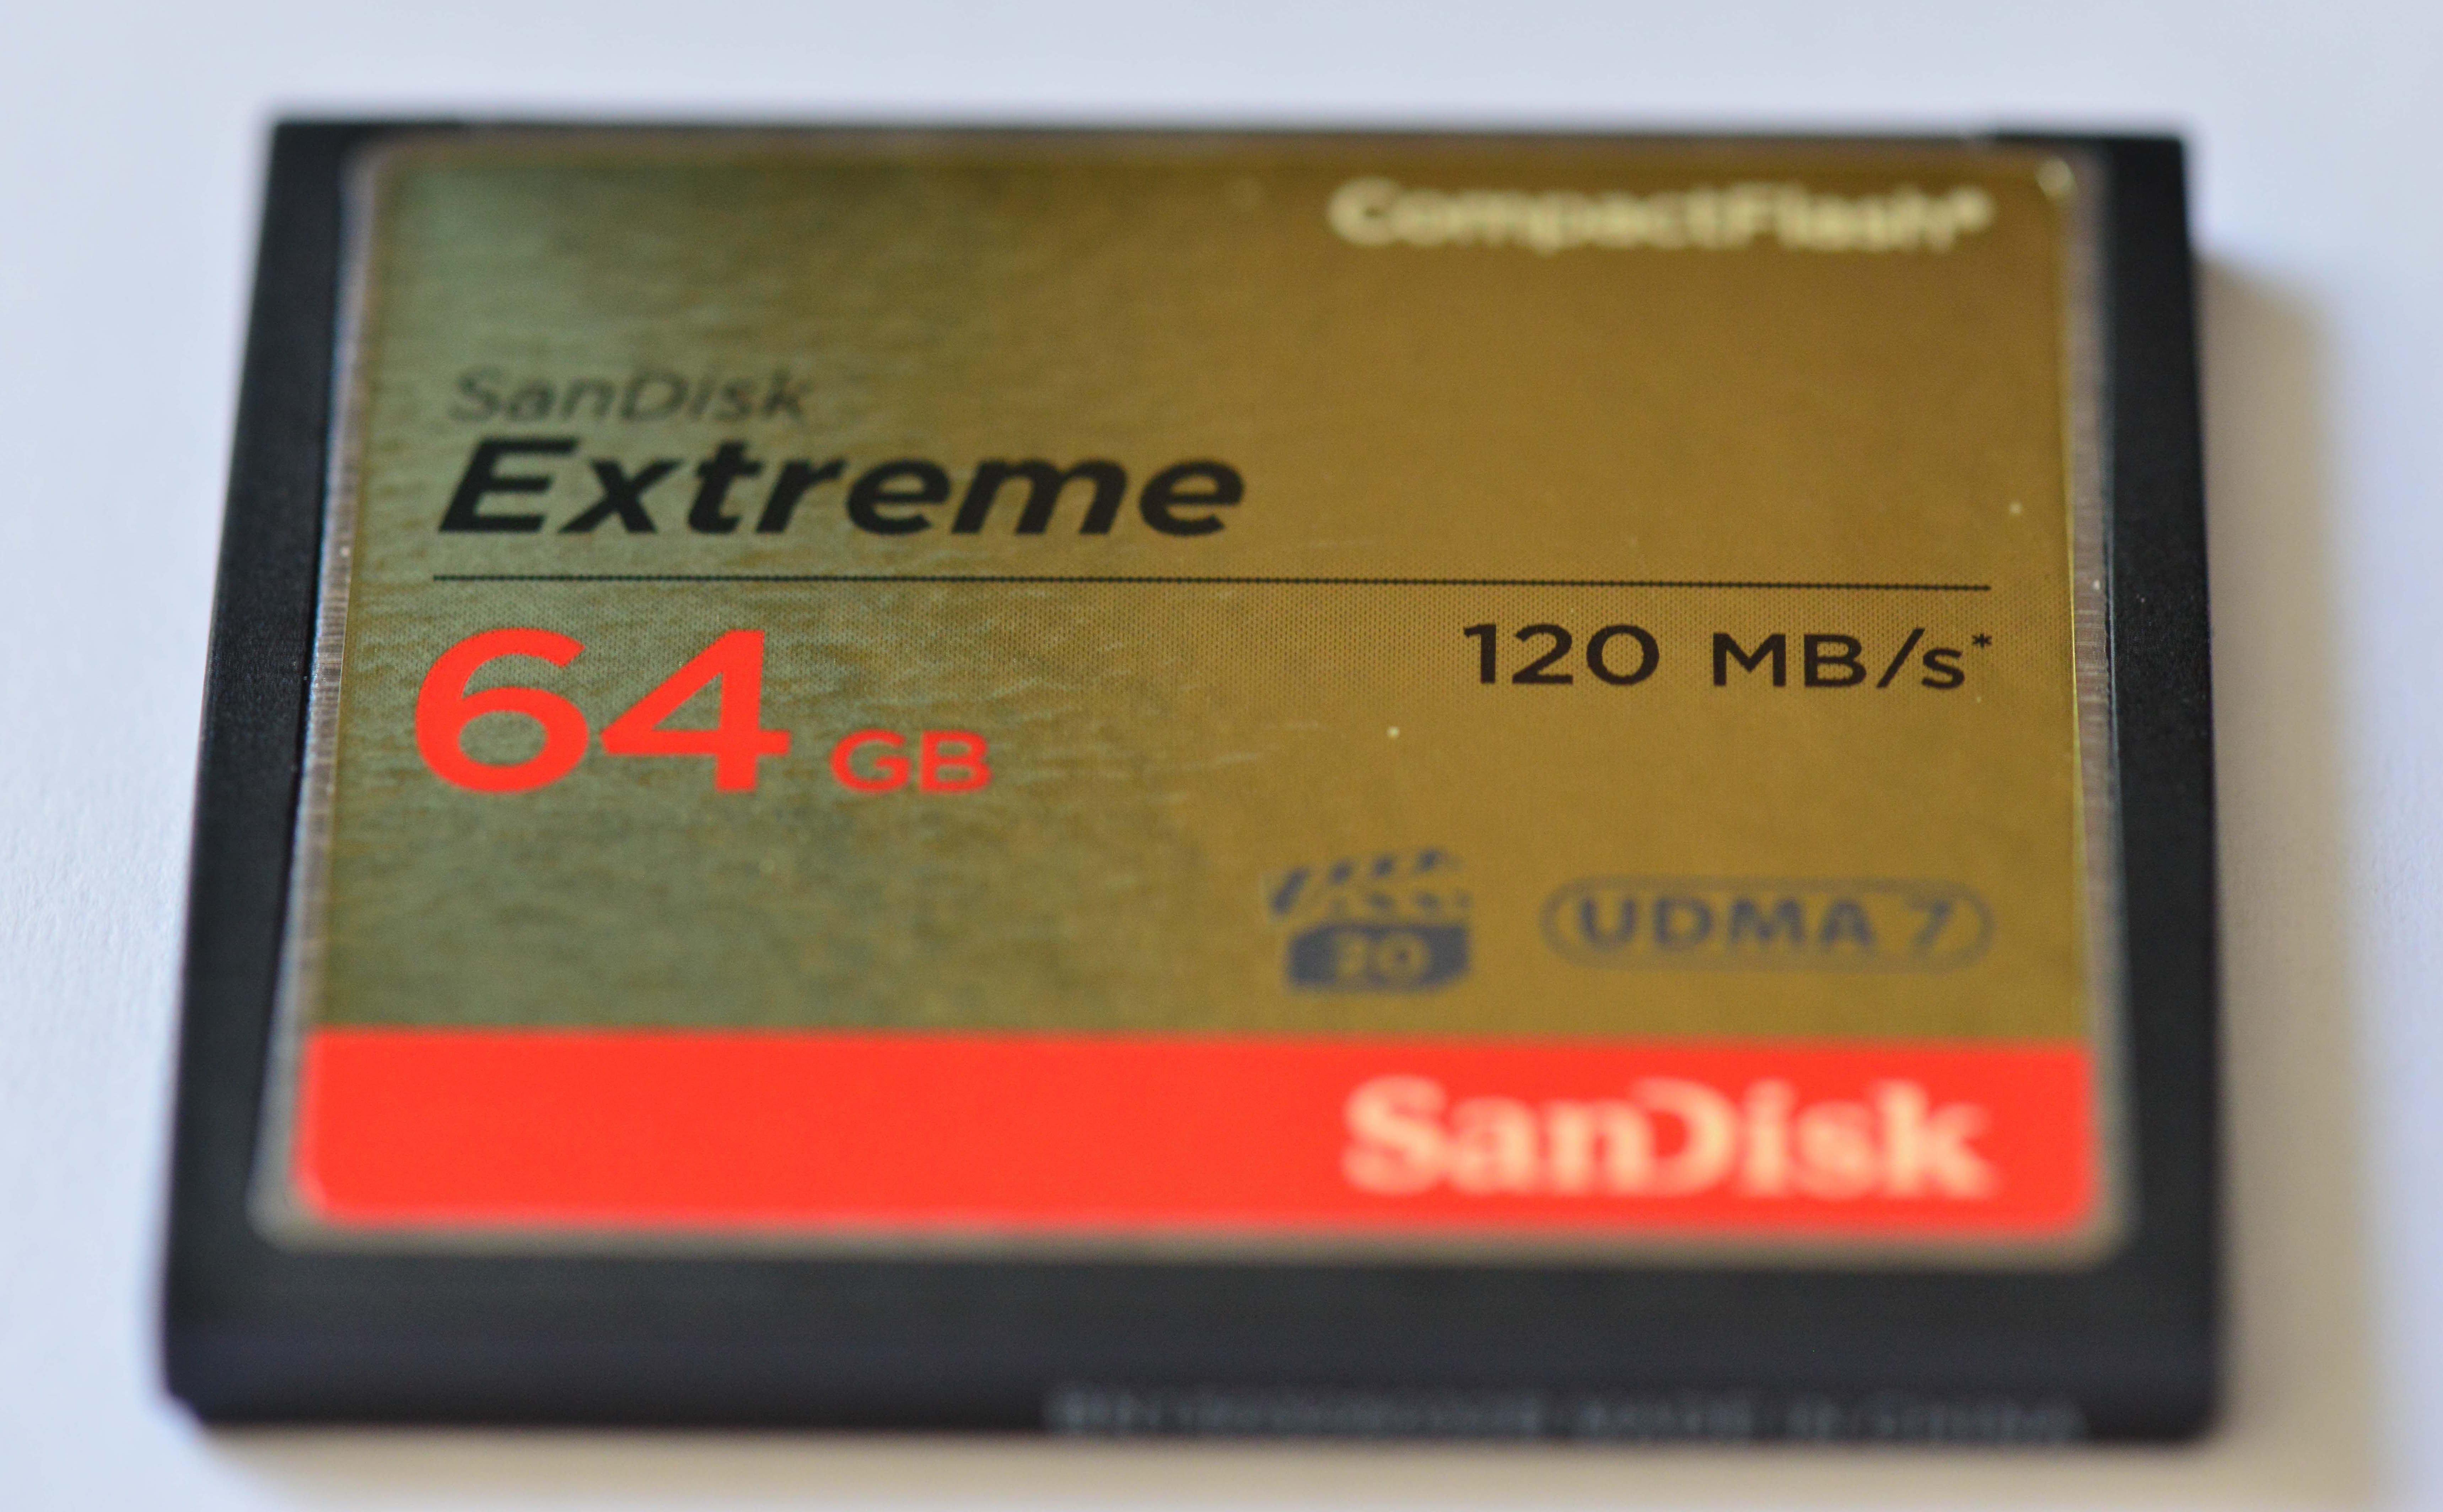 SanDisk Compact Flash 64Go, 120MB/s